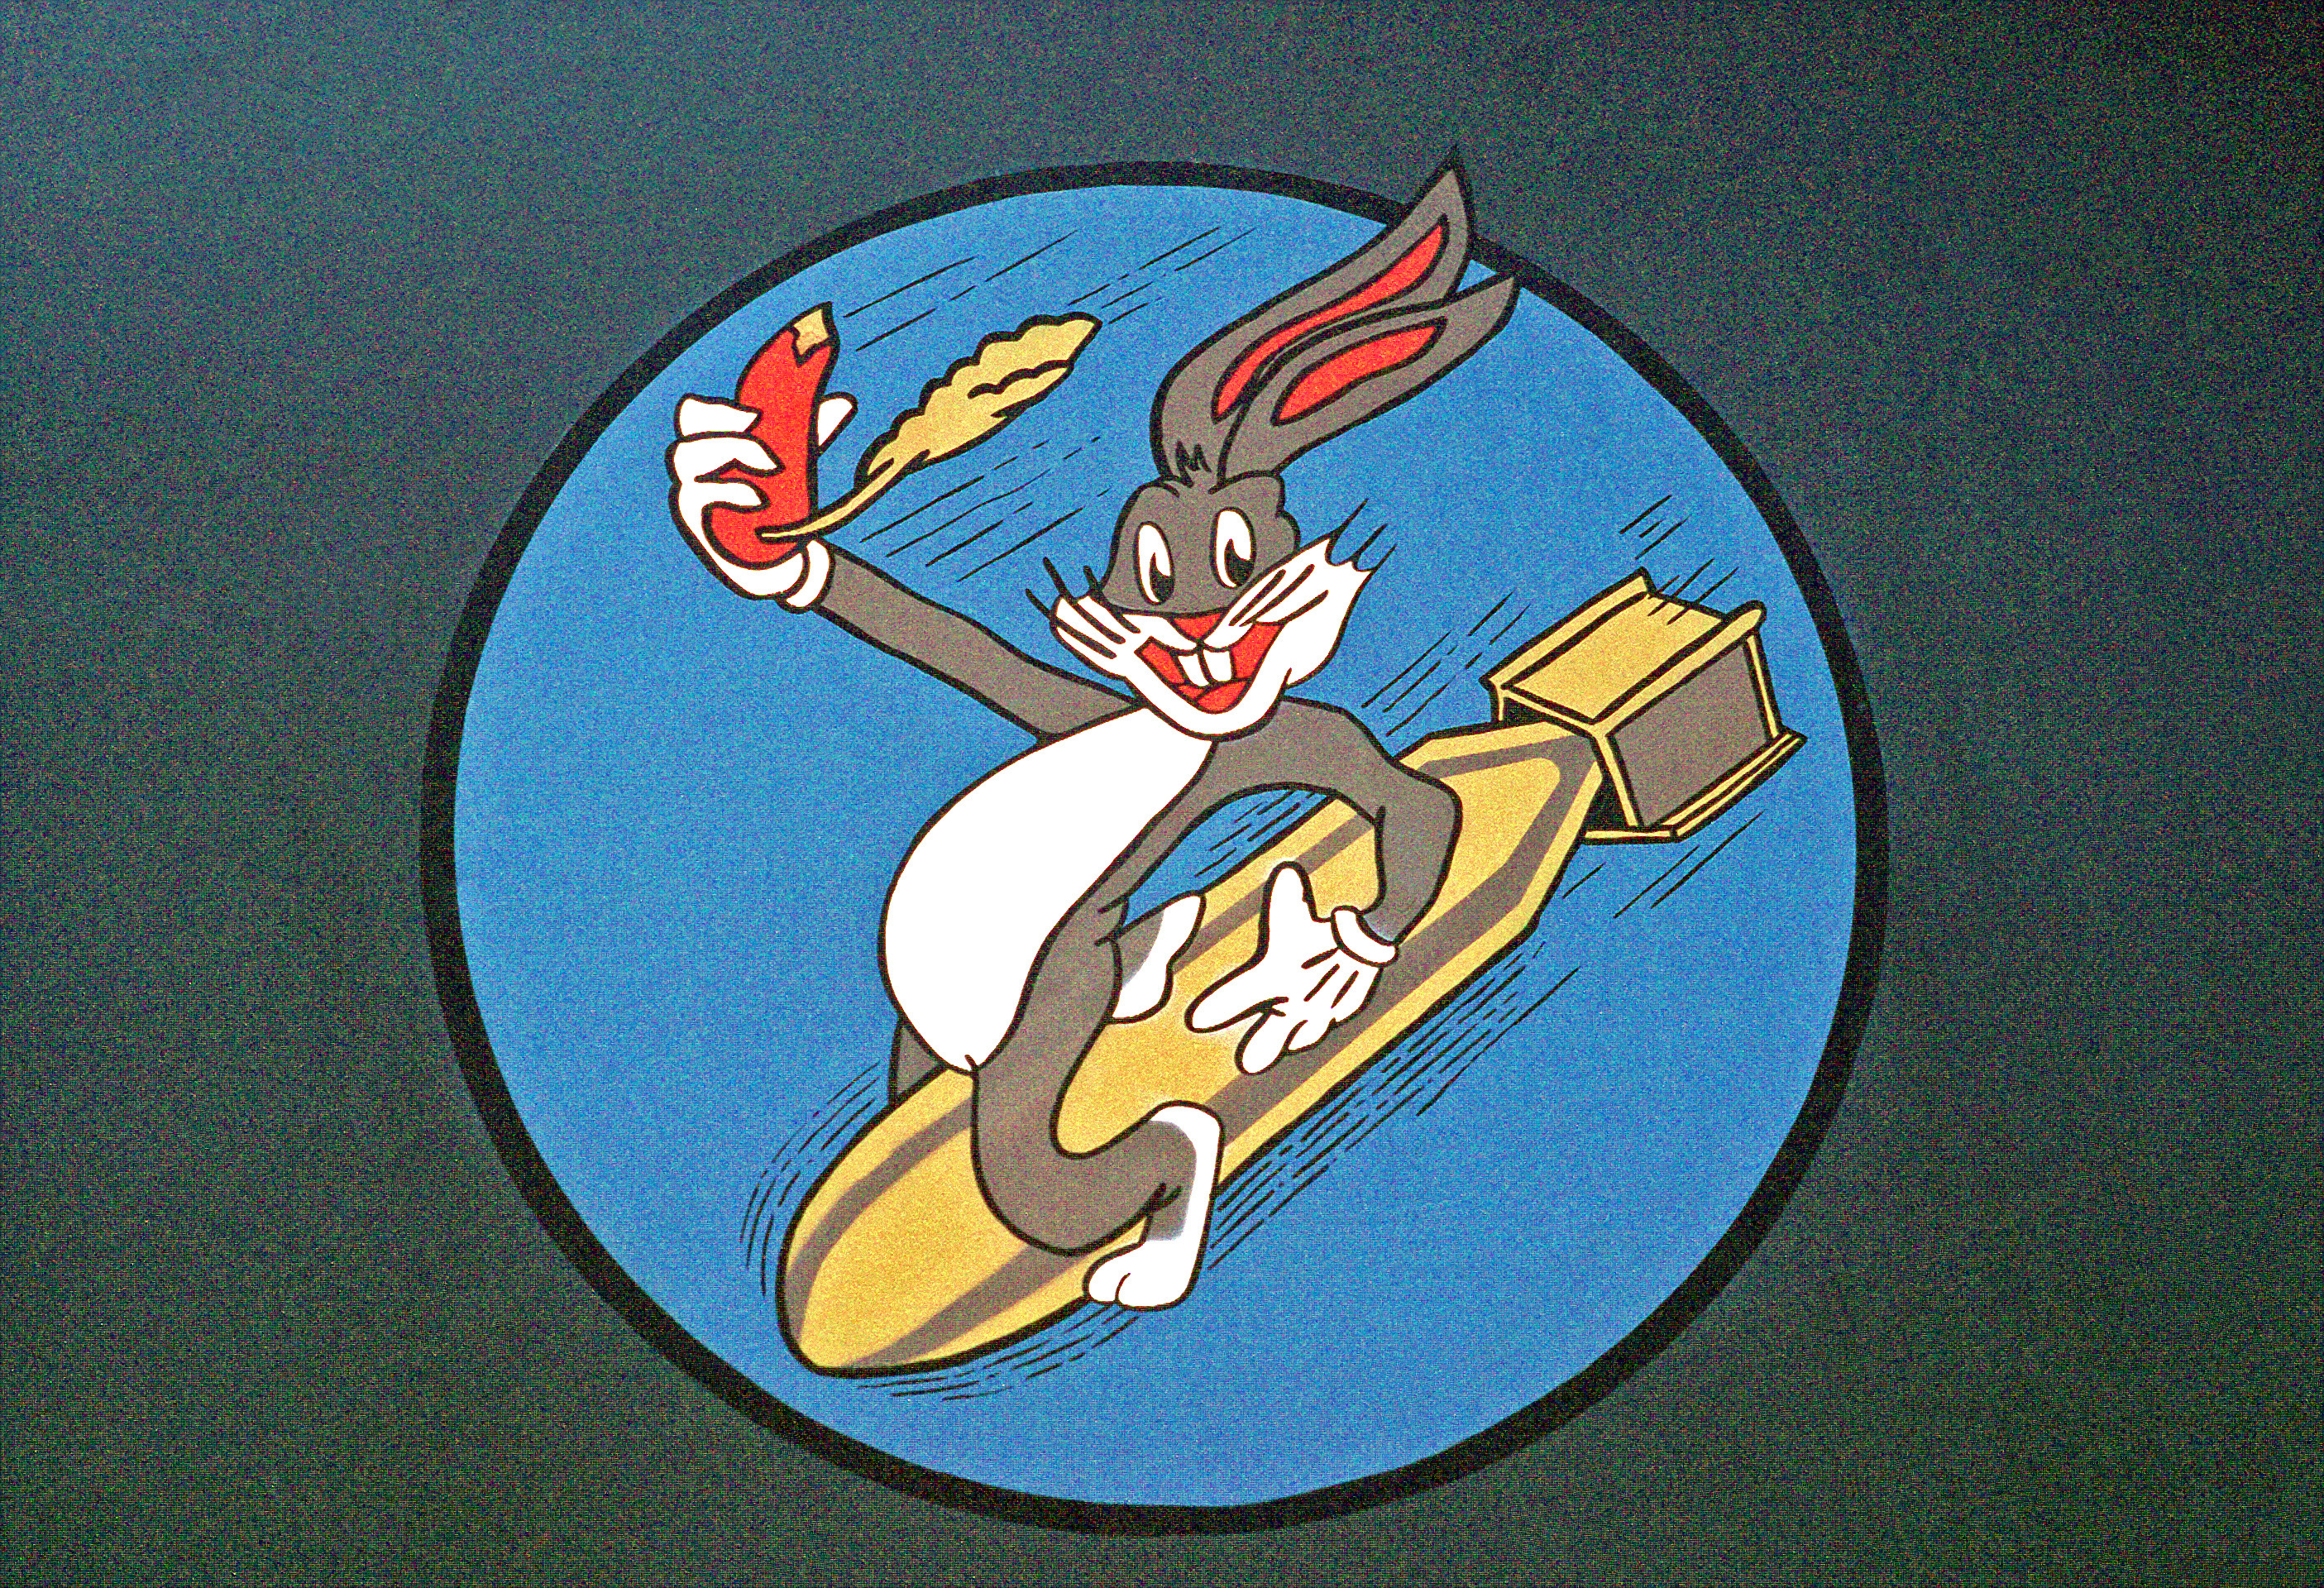 Depiction of Bugs Bunny